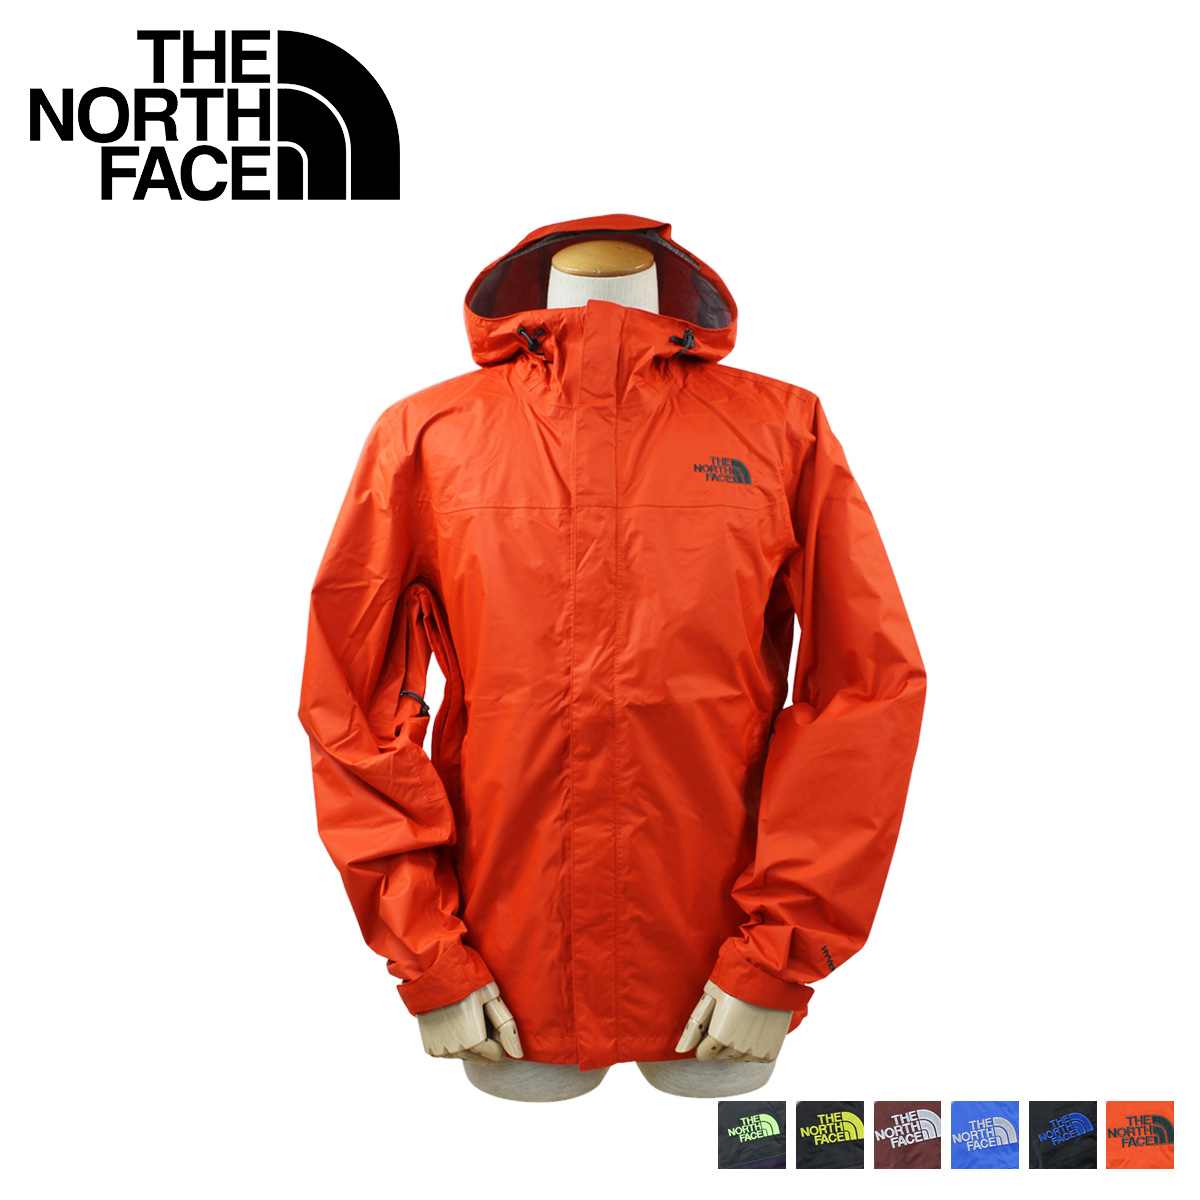 294ef1bfa817 ... spain whats up sports the north face north face jacket nylon jacket mens  venture jacket mens ...